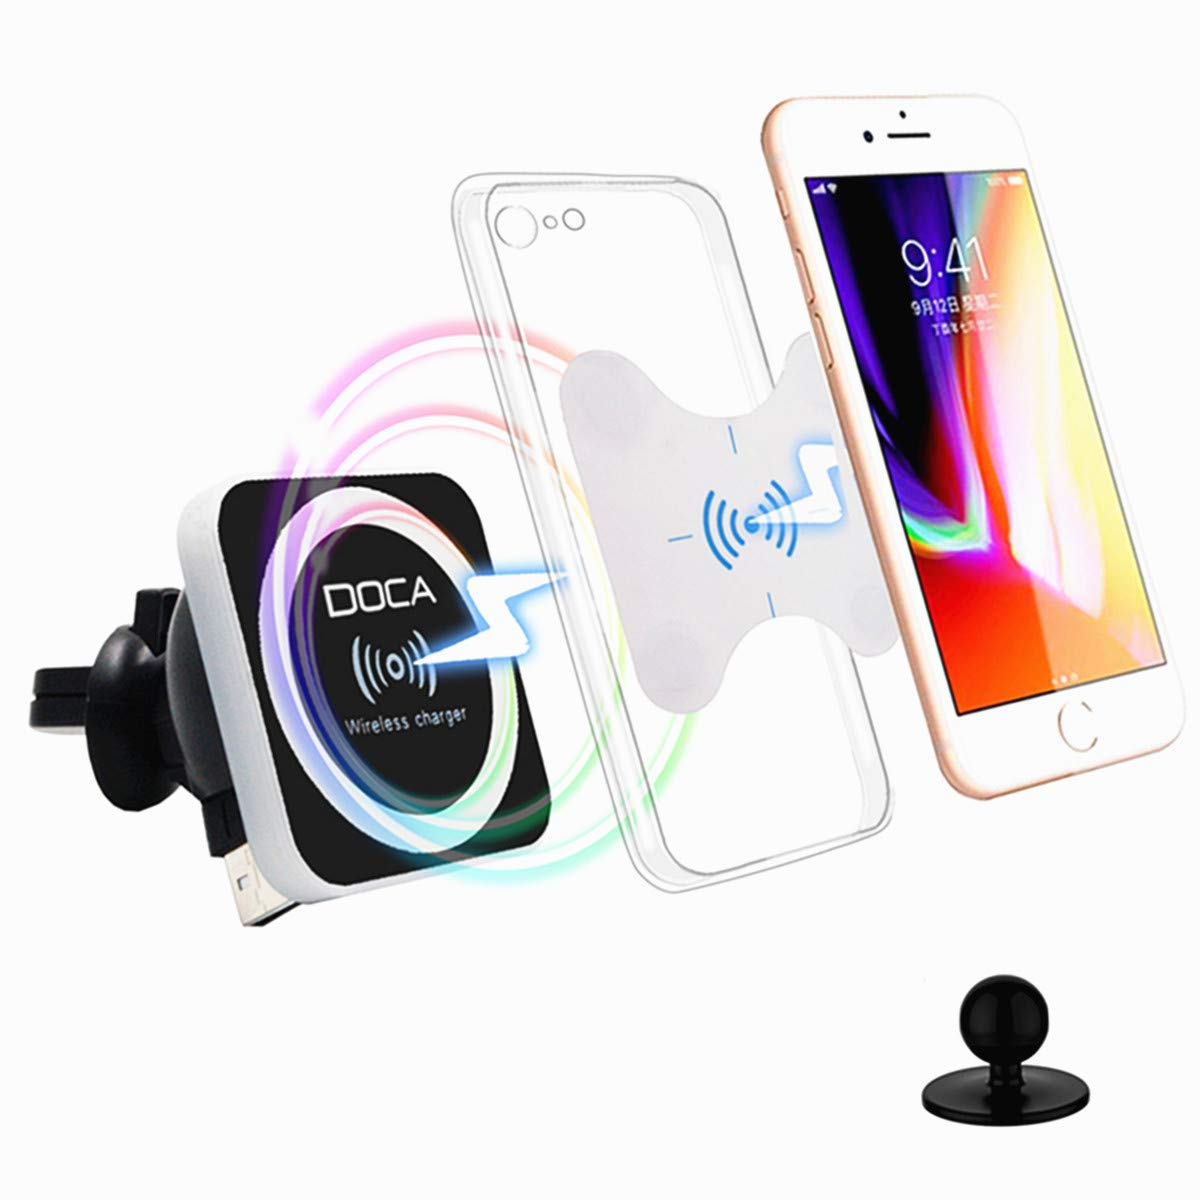 DOCA Magnetic Wireless Car Charger, QI Wireless Car Charger Air Vent Mount Holder for i Phone XR,XS,Max,X,8,8P, Samsung Galaxy Note 8 S8/S8 Plus S7 Edge and All Wireless Enabled Devices by DOCA